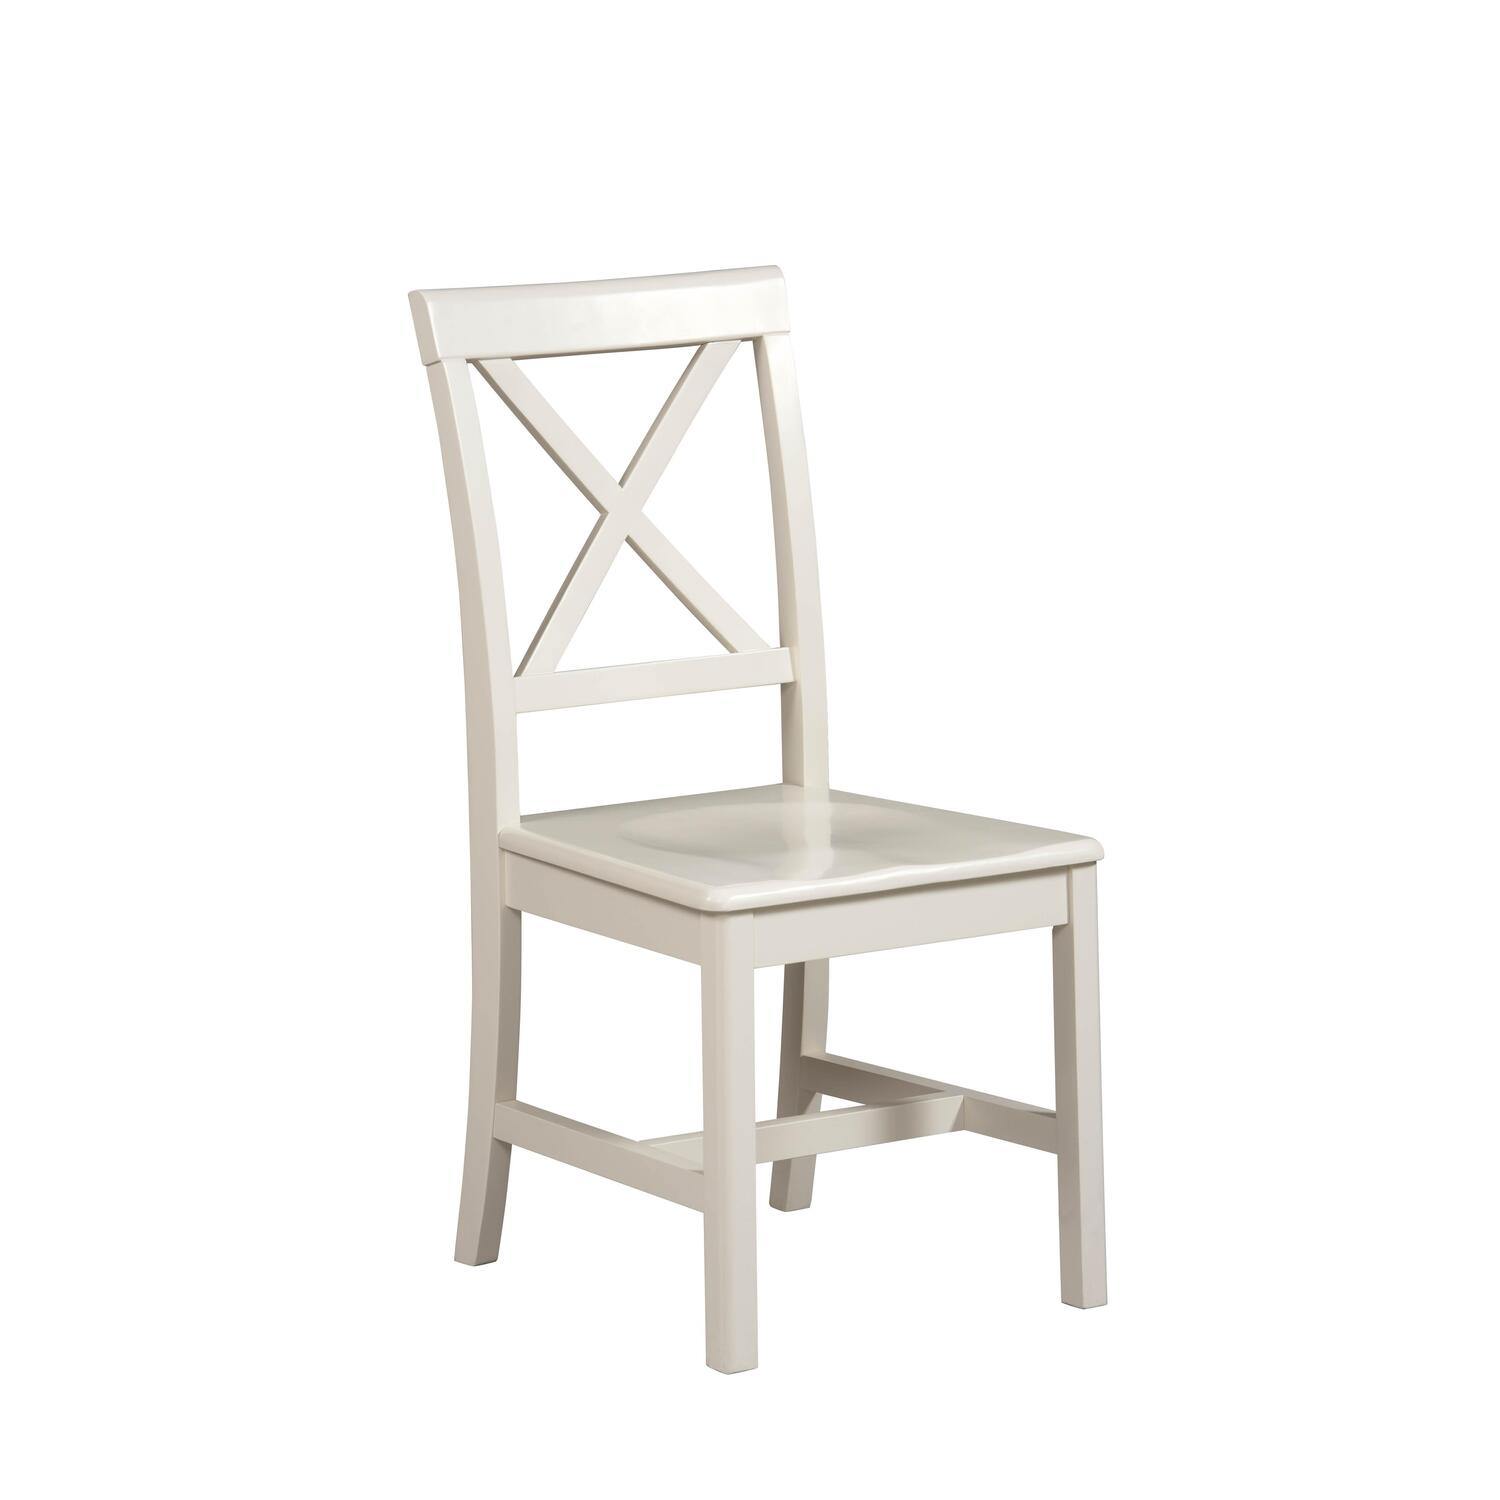 linon home decor products anna desk chair in antique white 85 41 ojcommerce 13516